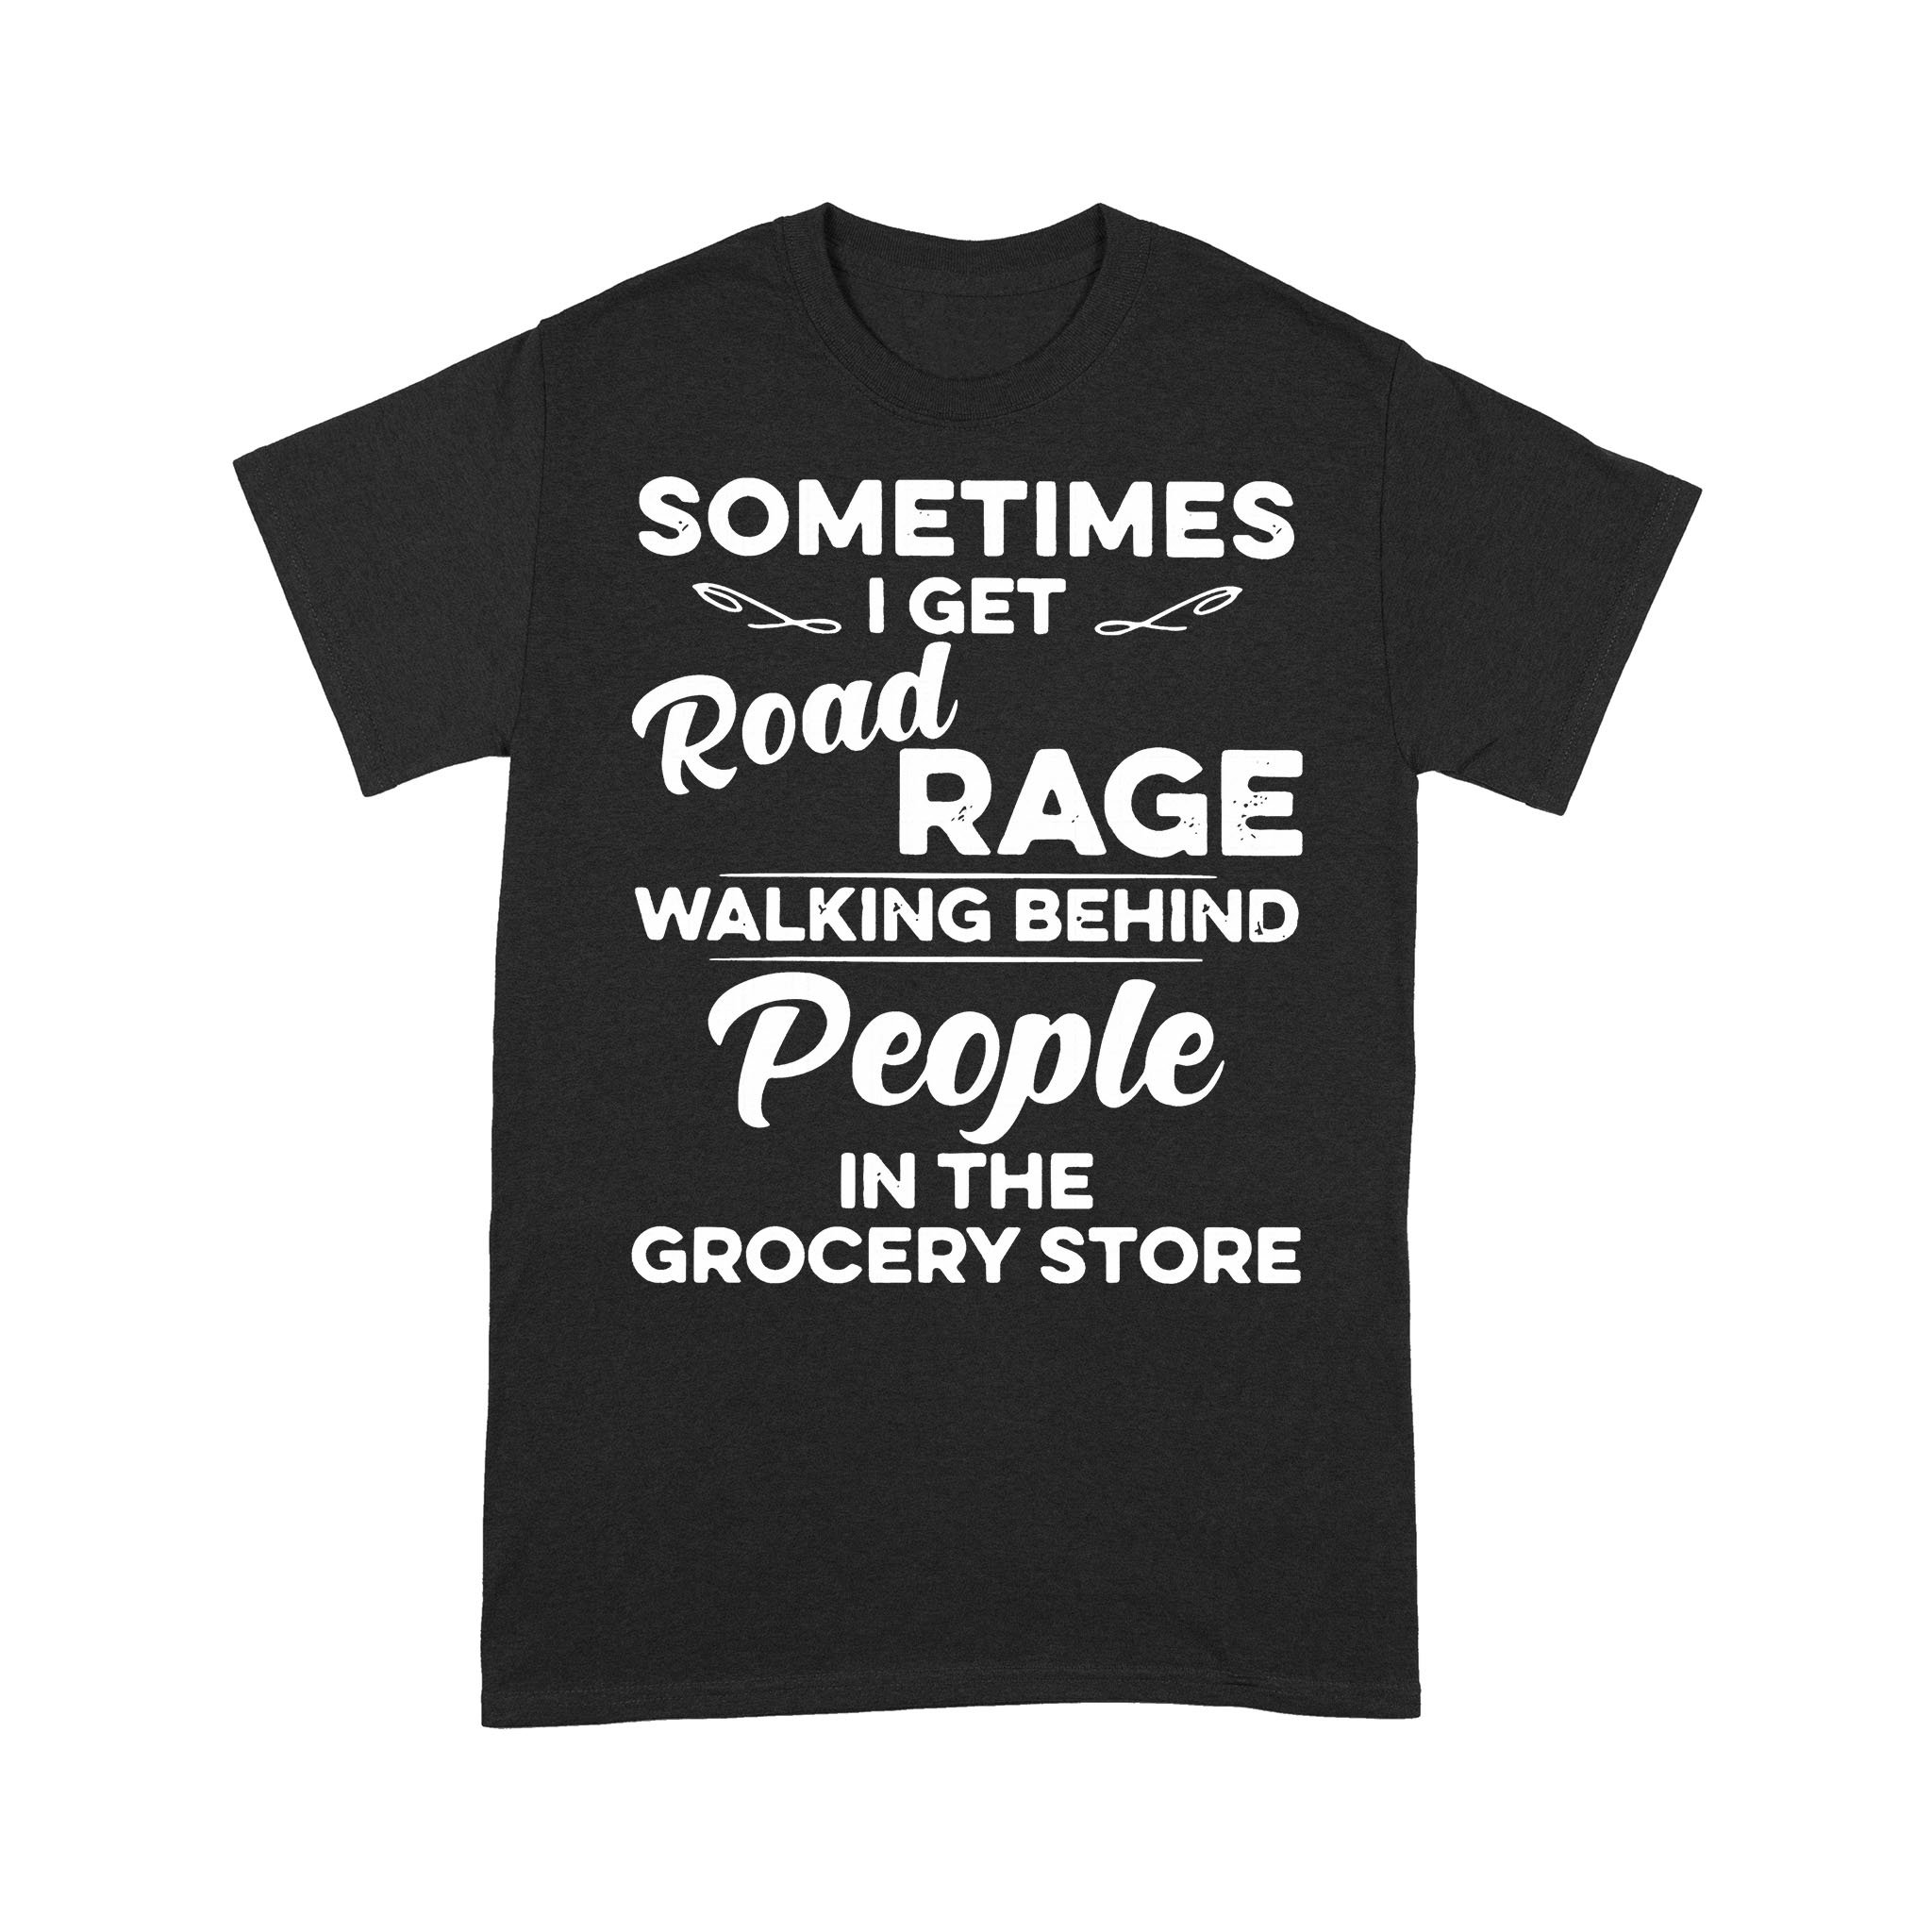 Sometimes I Get Road Rage Wlking Behind People In The Grocery Store T-shirt